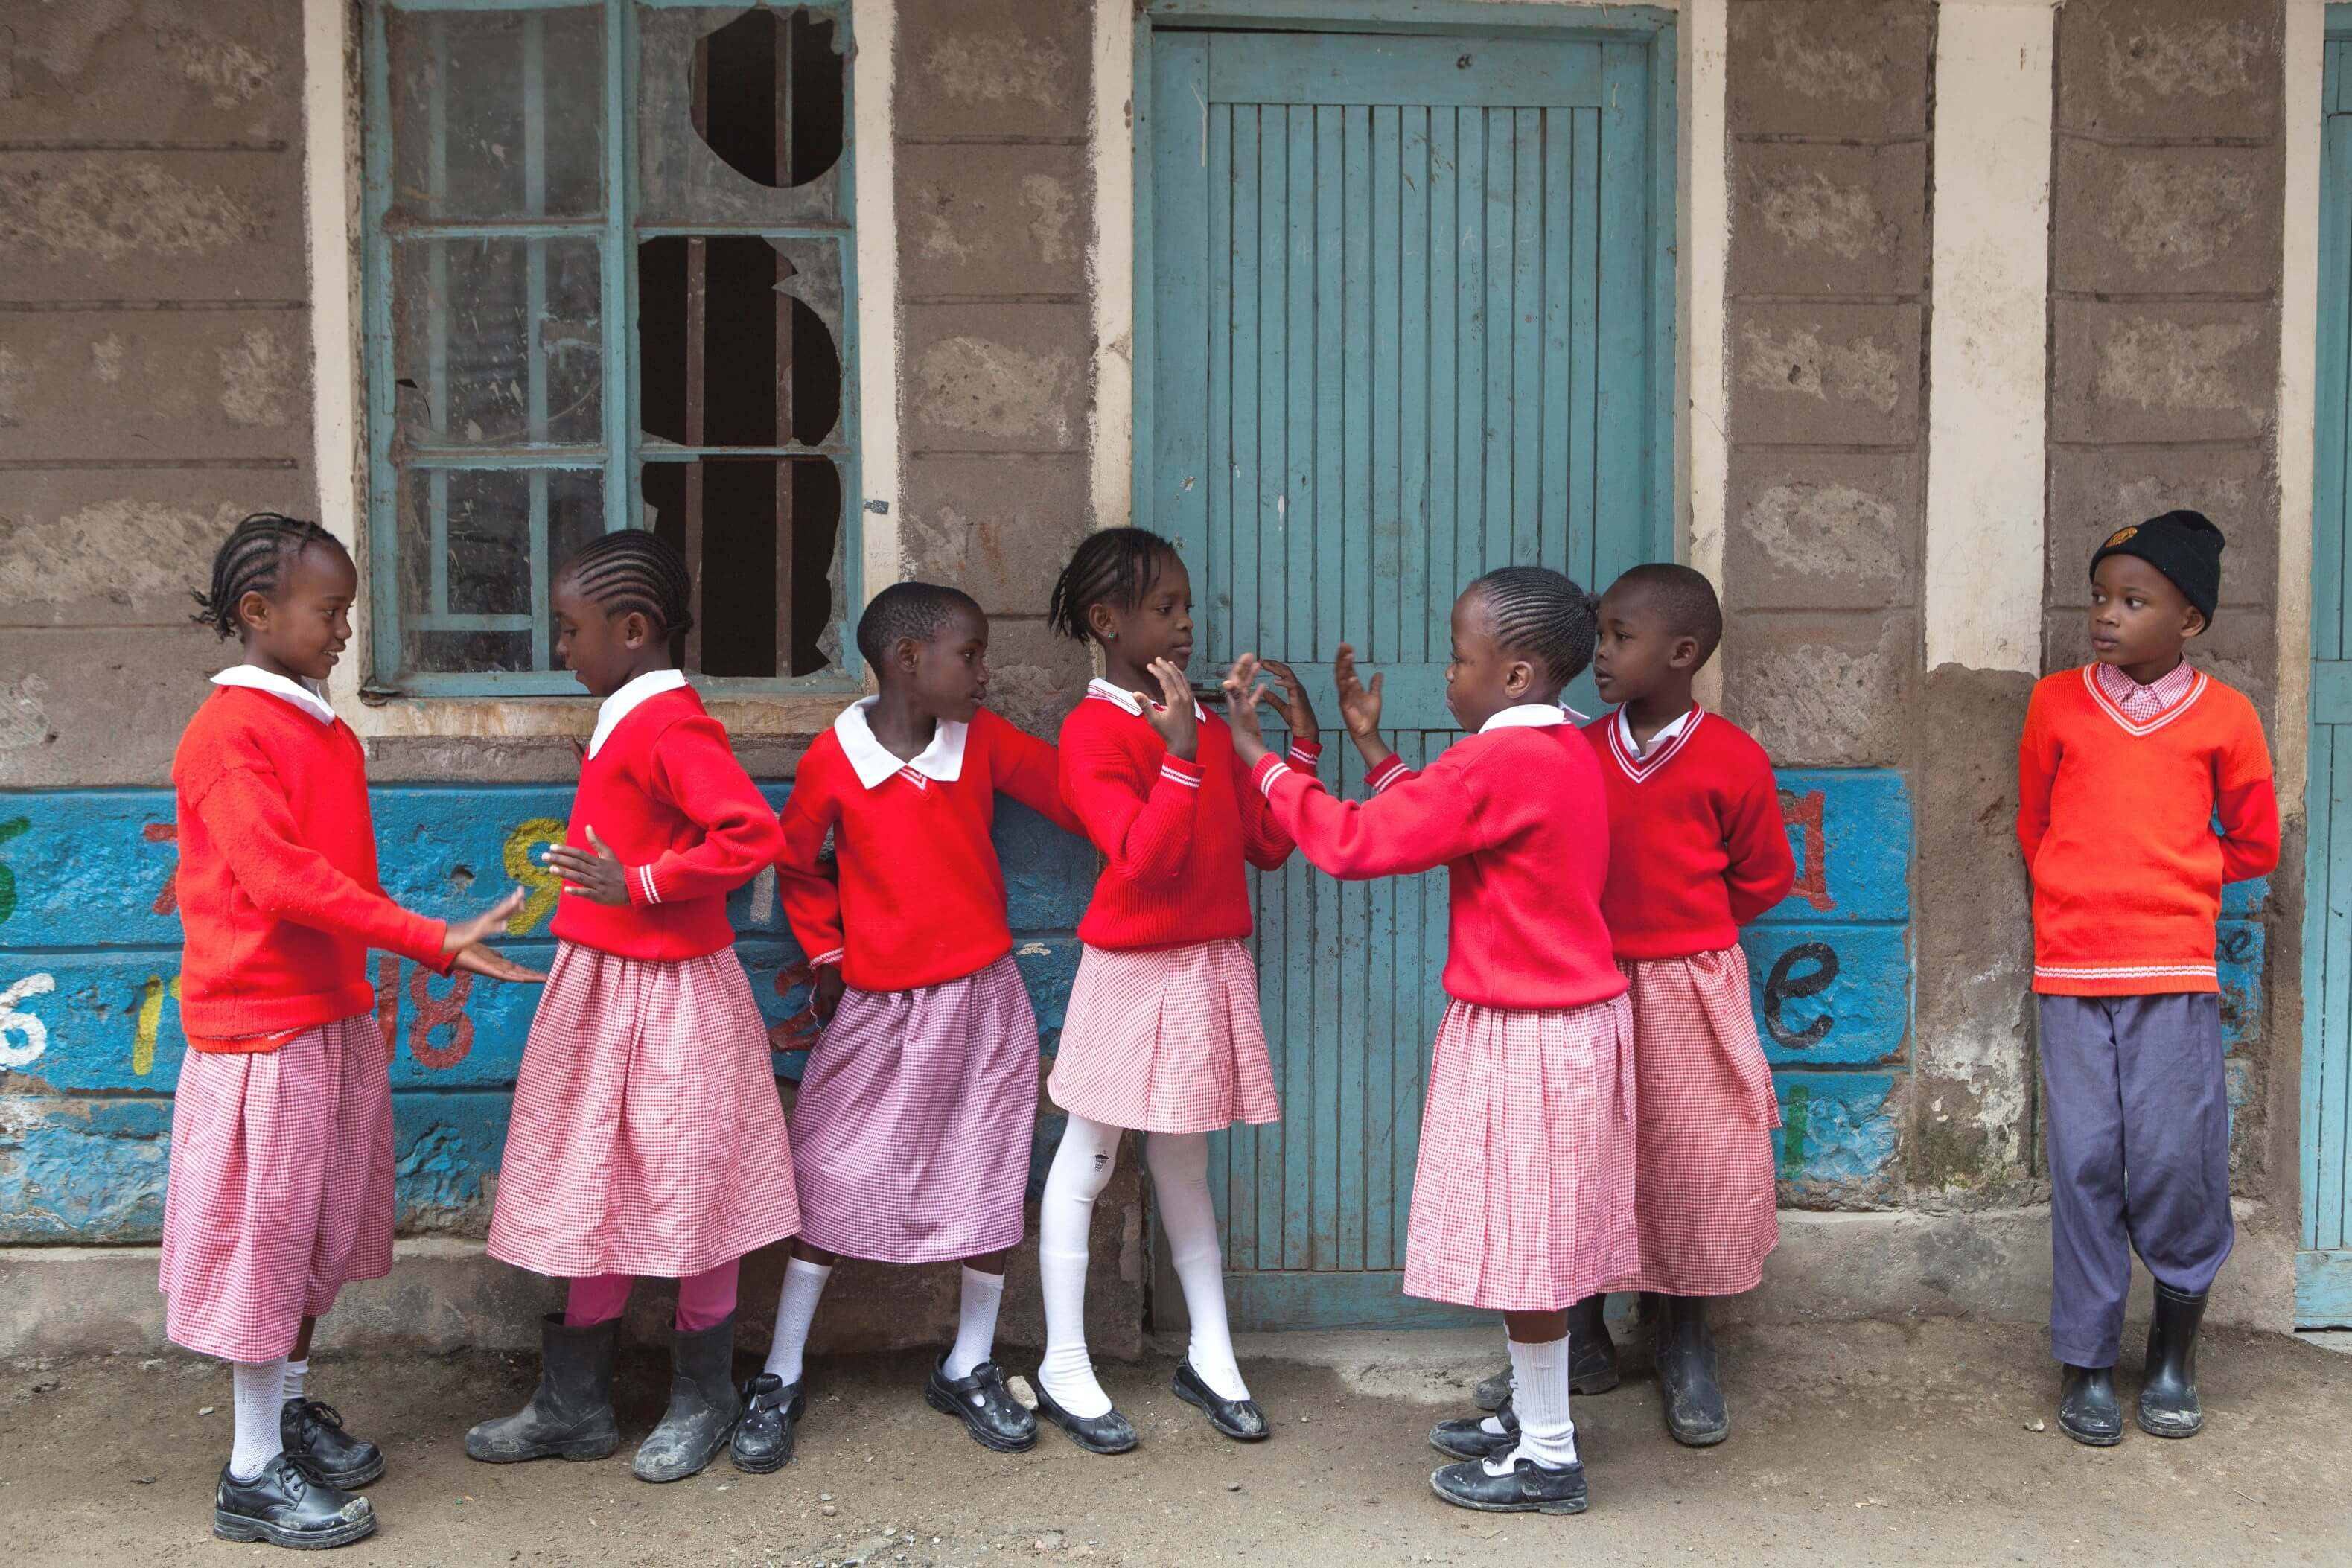 Students outside a school in Kenya supported by the Education for Marginalized Children in Kenya project